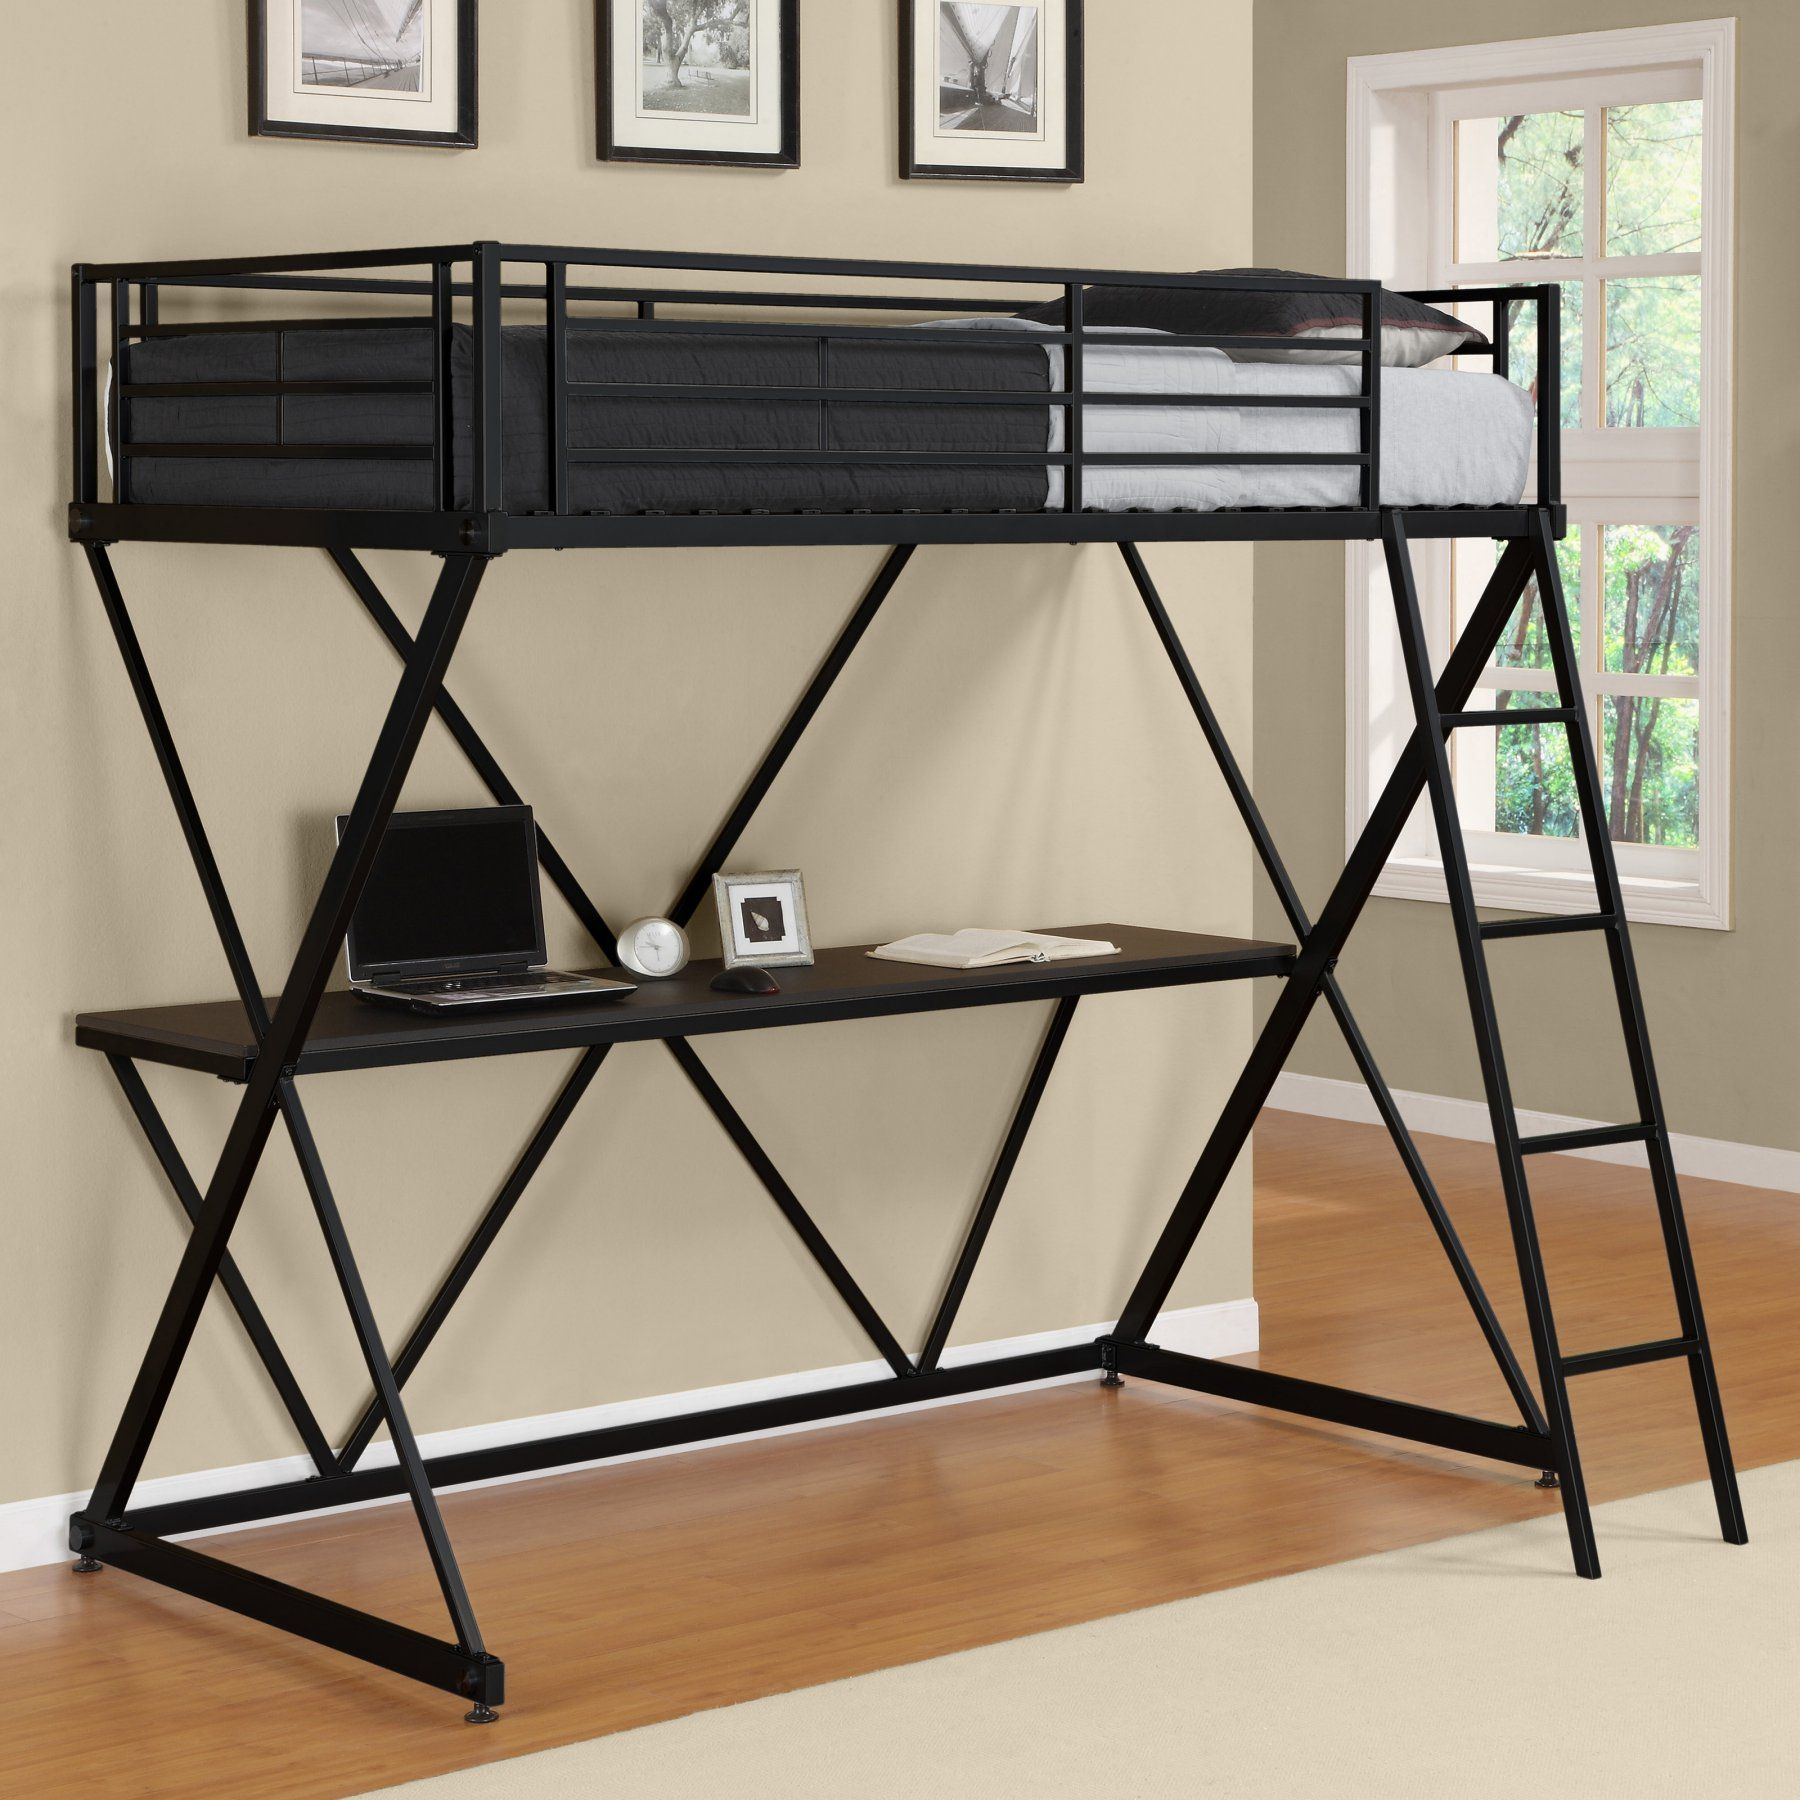 Dhp x loft bed black products